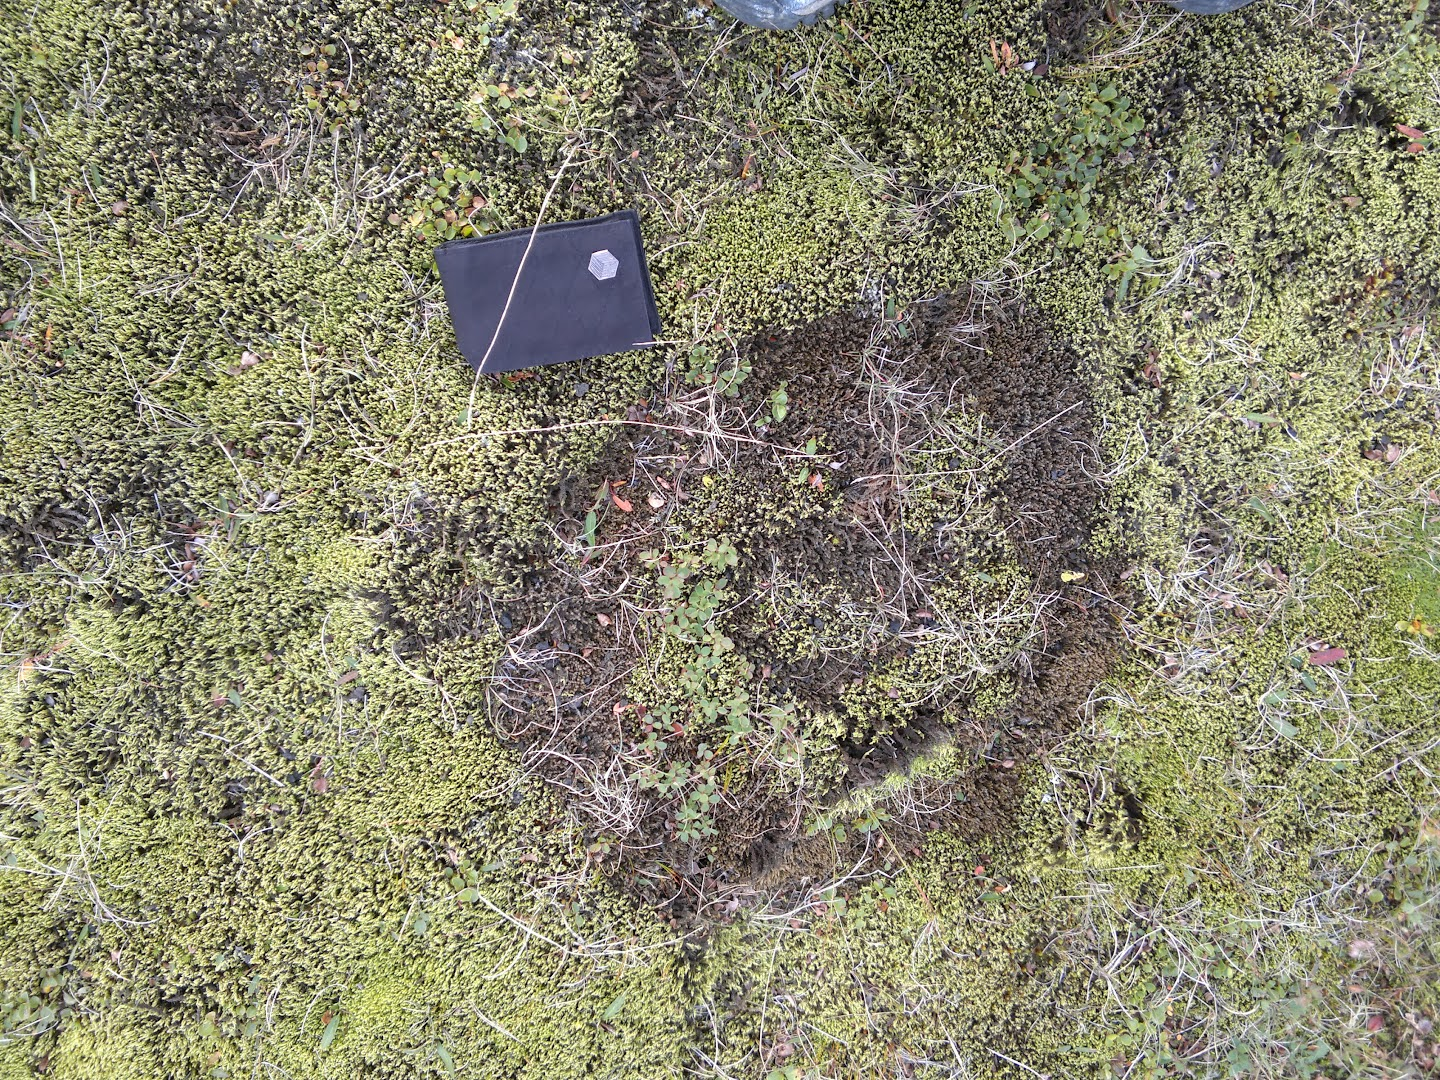 Aliens! Strange circular patterns on moss, no idea how these are born. JJT